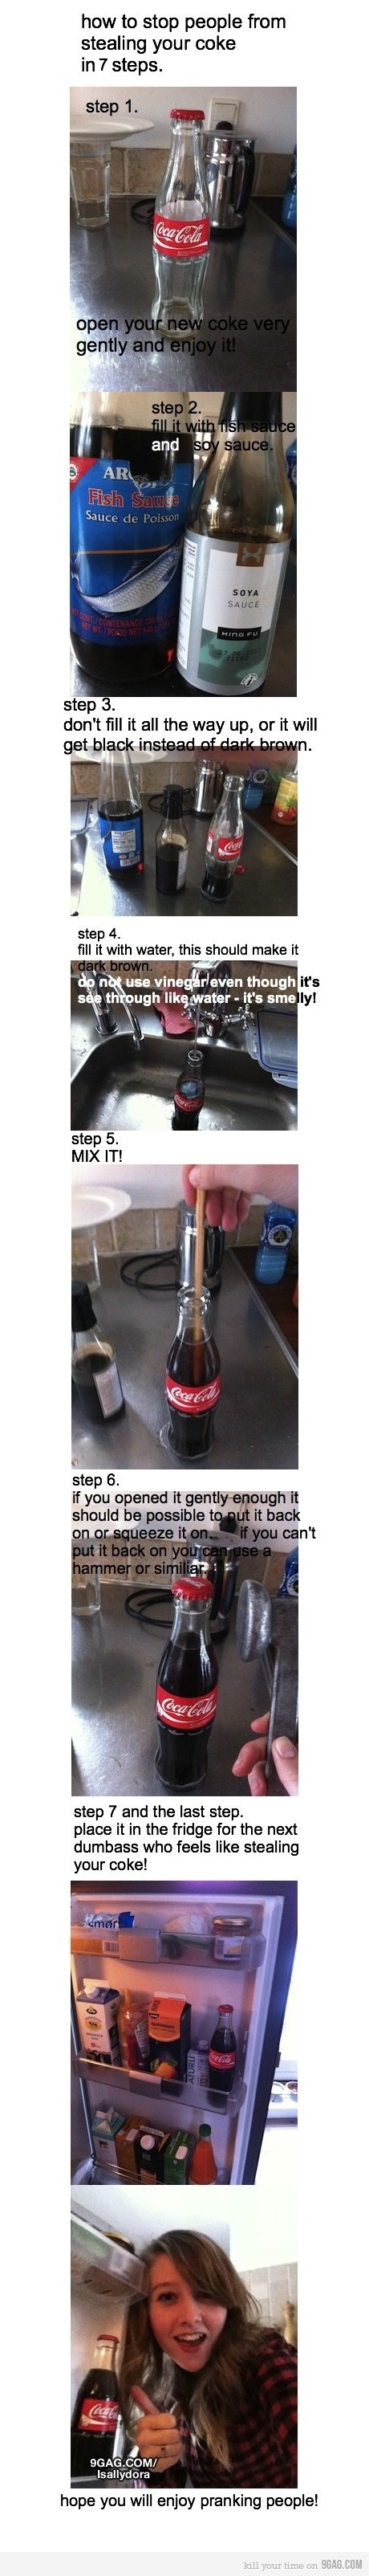 How to stop people from stealing your coke